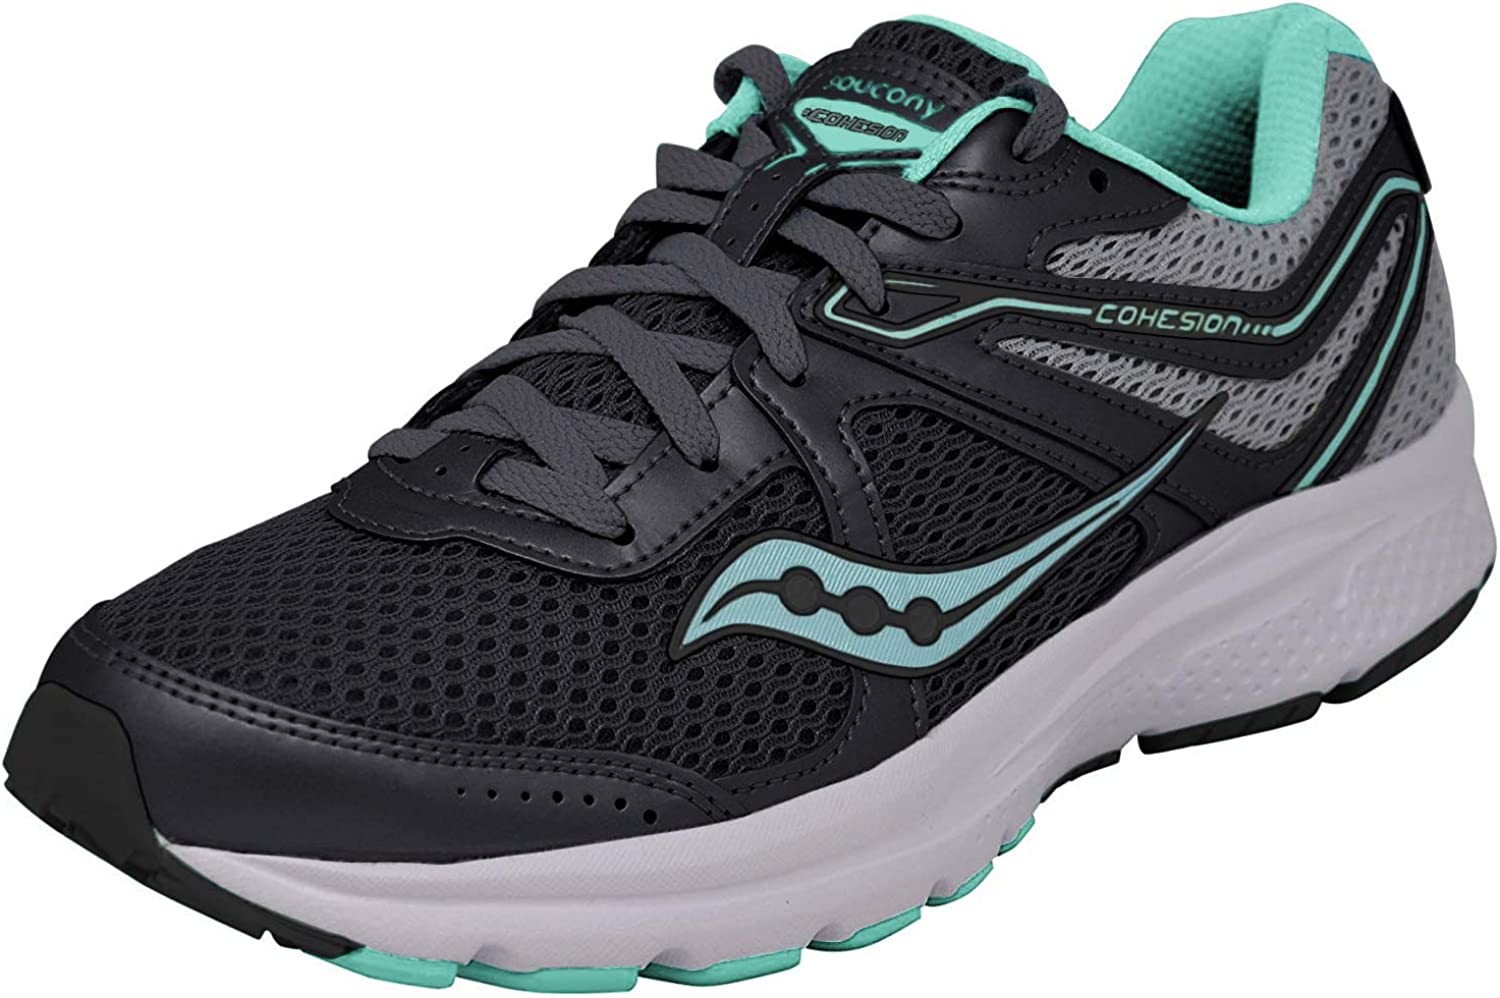 Saucony Mens Grid Cohesion 11 Running Shoes S10420 1 MSRP $60